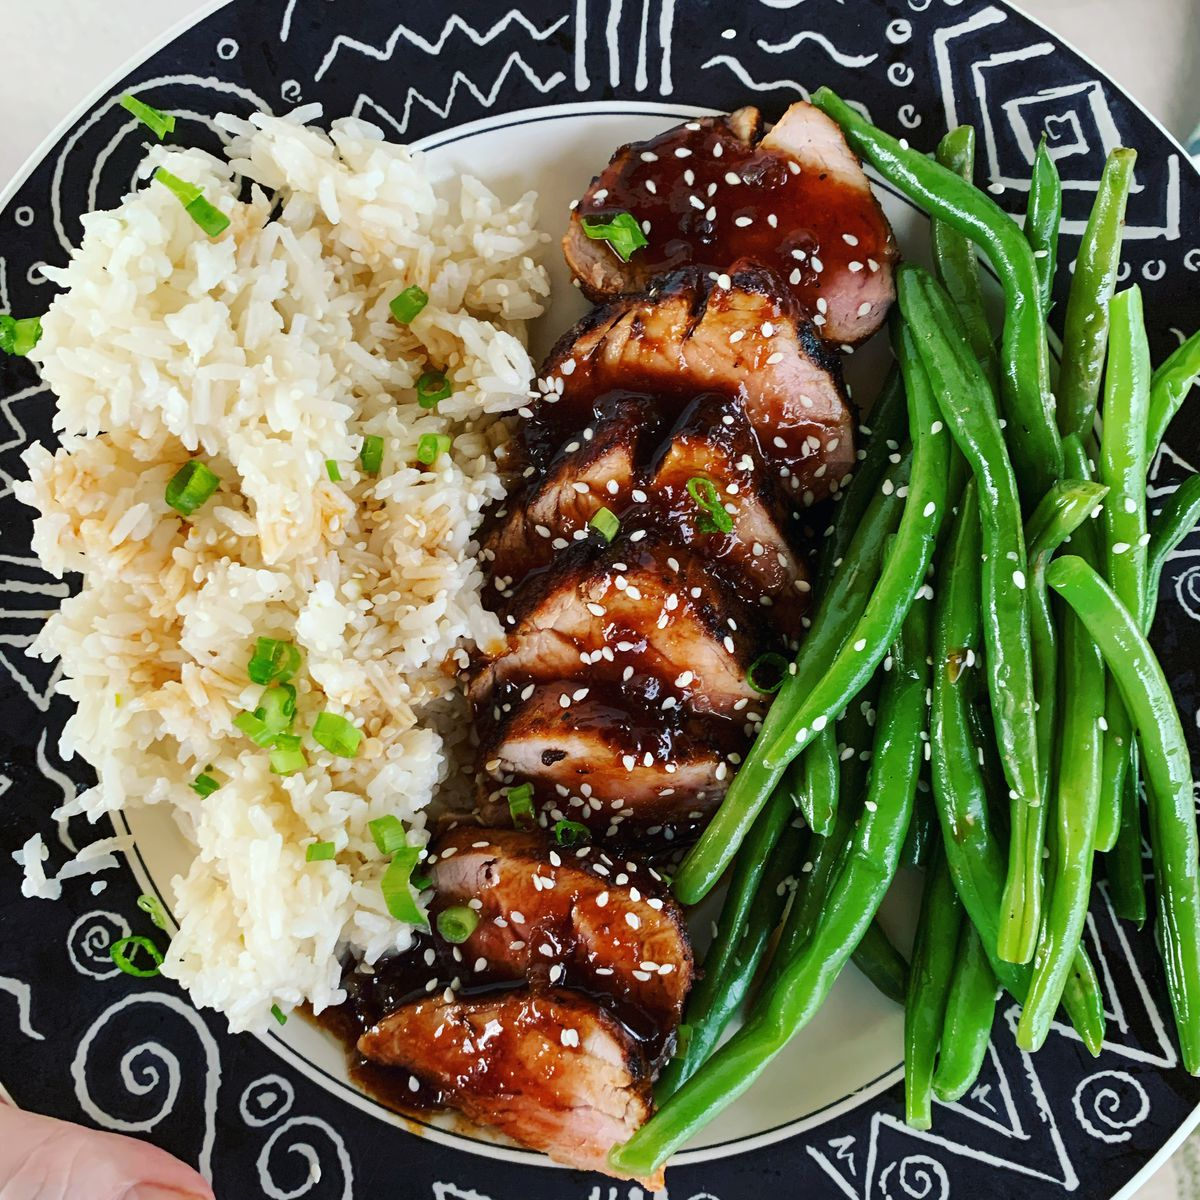 From above, a patterned plate with slices of pork topped with sauce, green beans, and rice